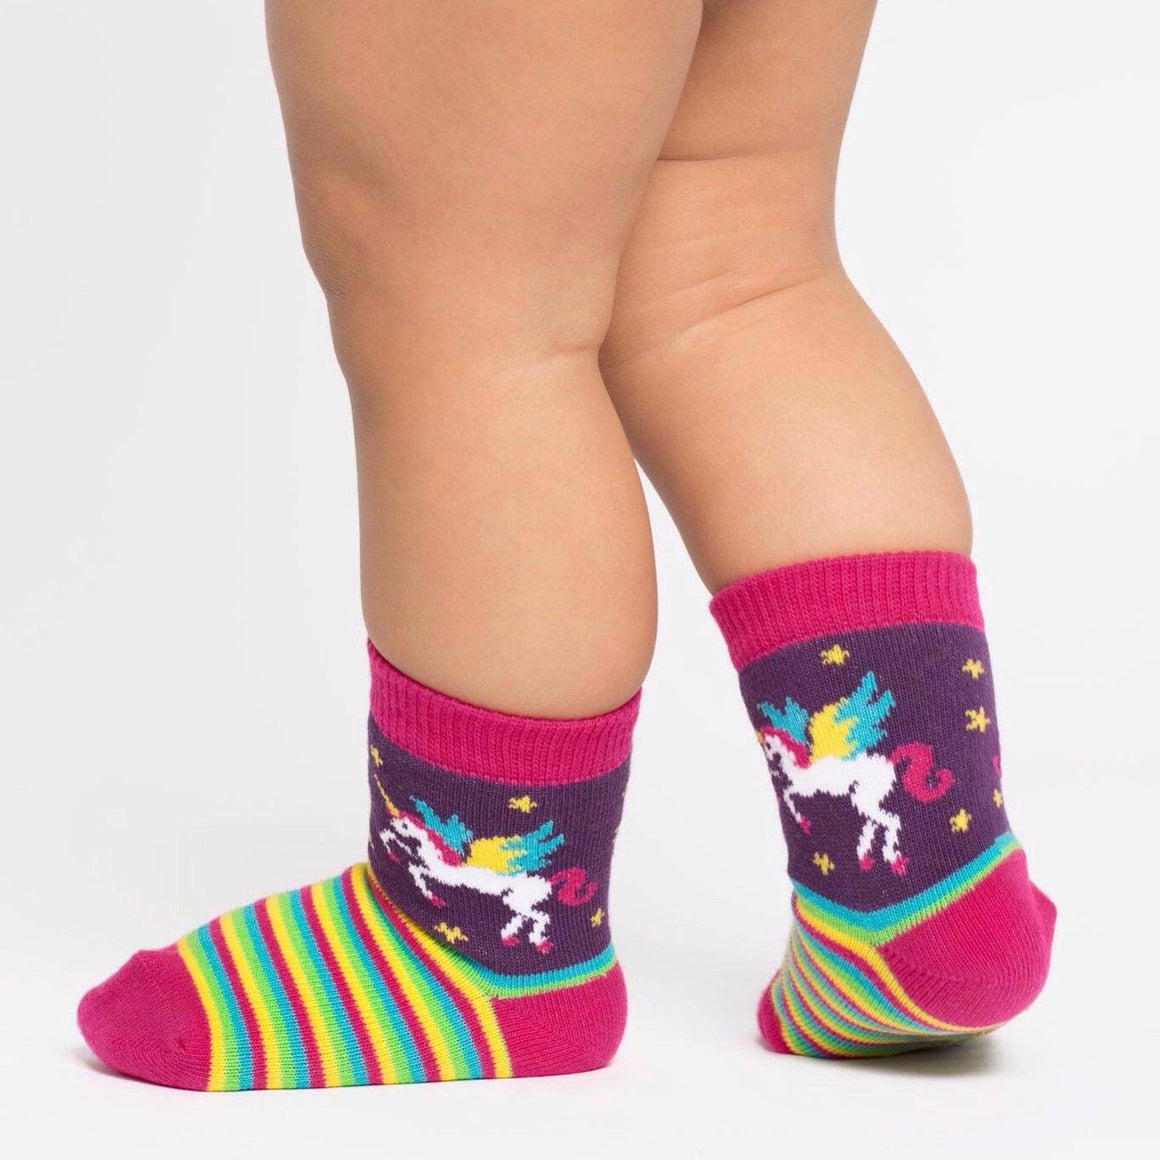 SOCKS - TODDLER CREW WINGING IT